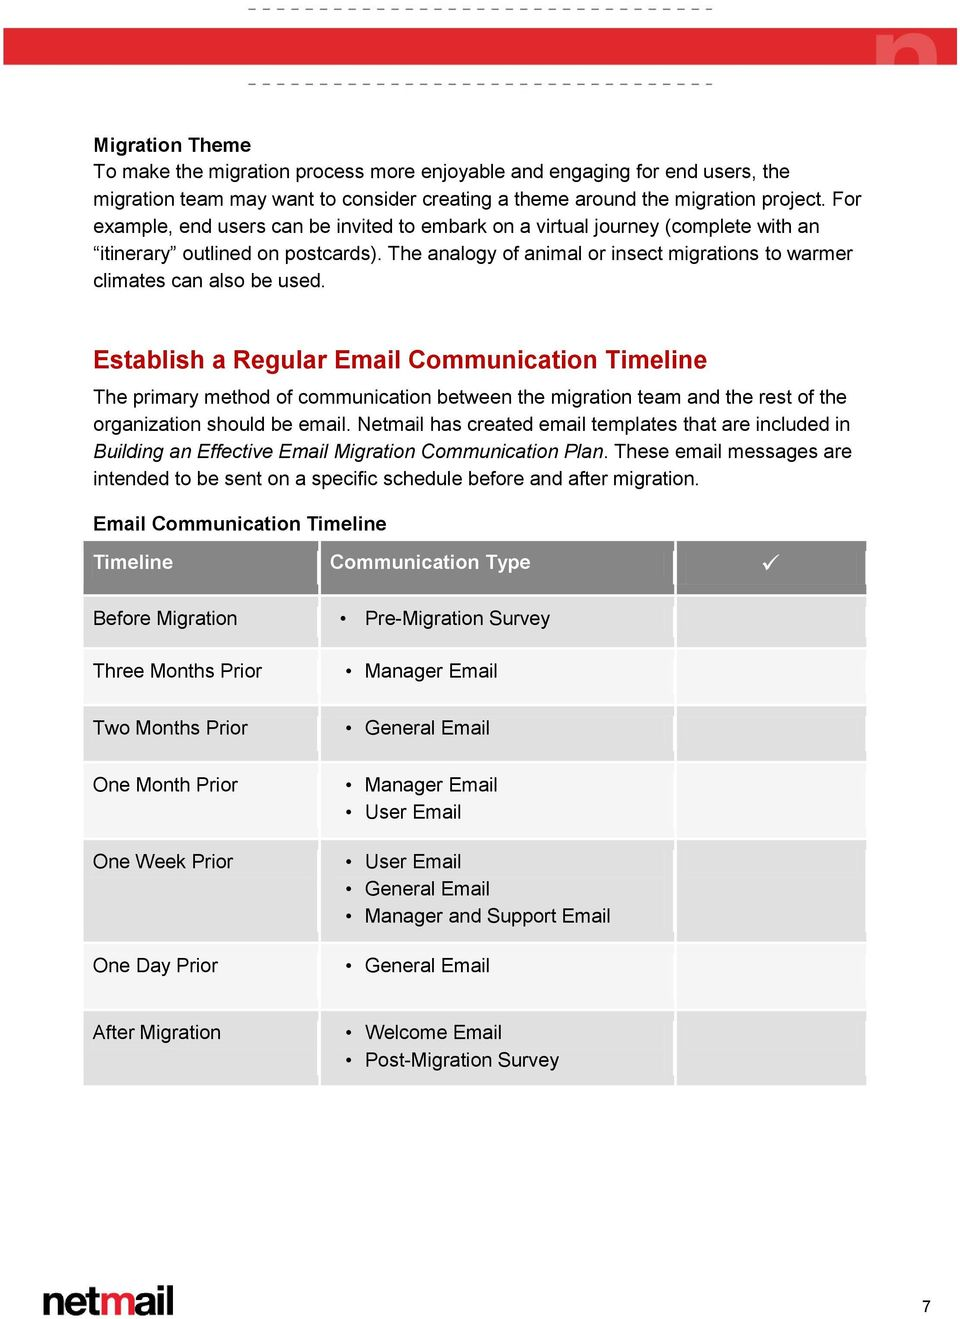 Establish a Regular Email Communication Timeline The primary method of communication between the migration team and the rest of the organization should be email.